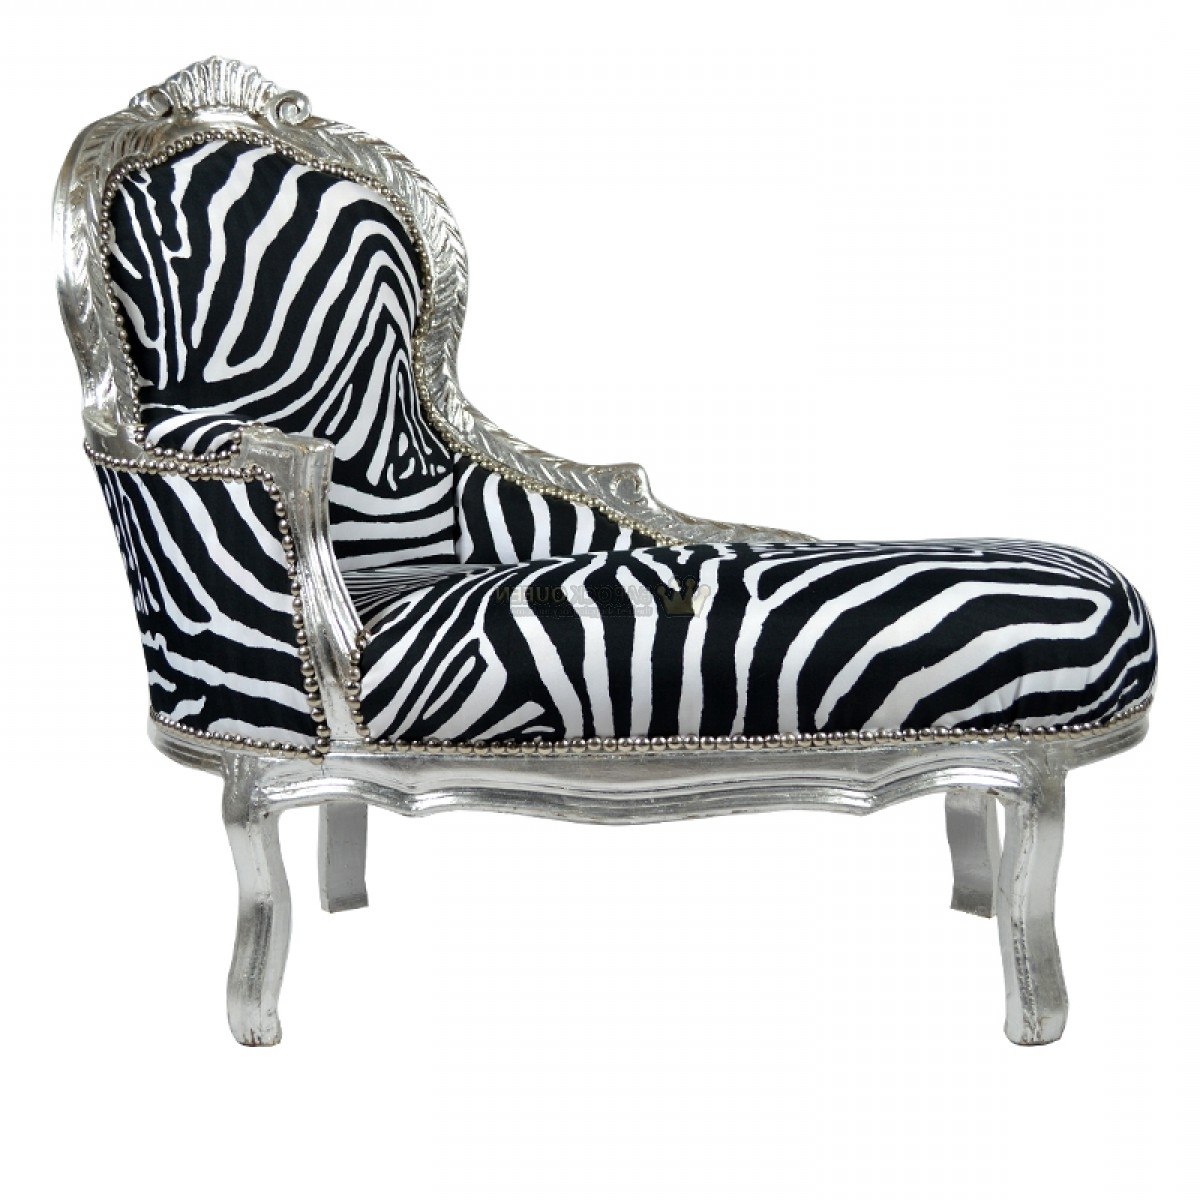 Kinder Chaise Lounge Zilver – Zebra – Kids Barok Pertaining To Widely Used Zebra Chaises (View 9 of 15)